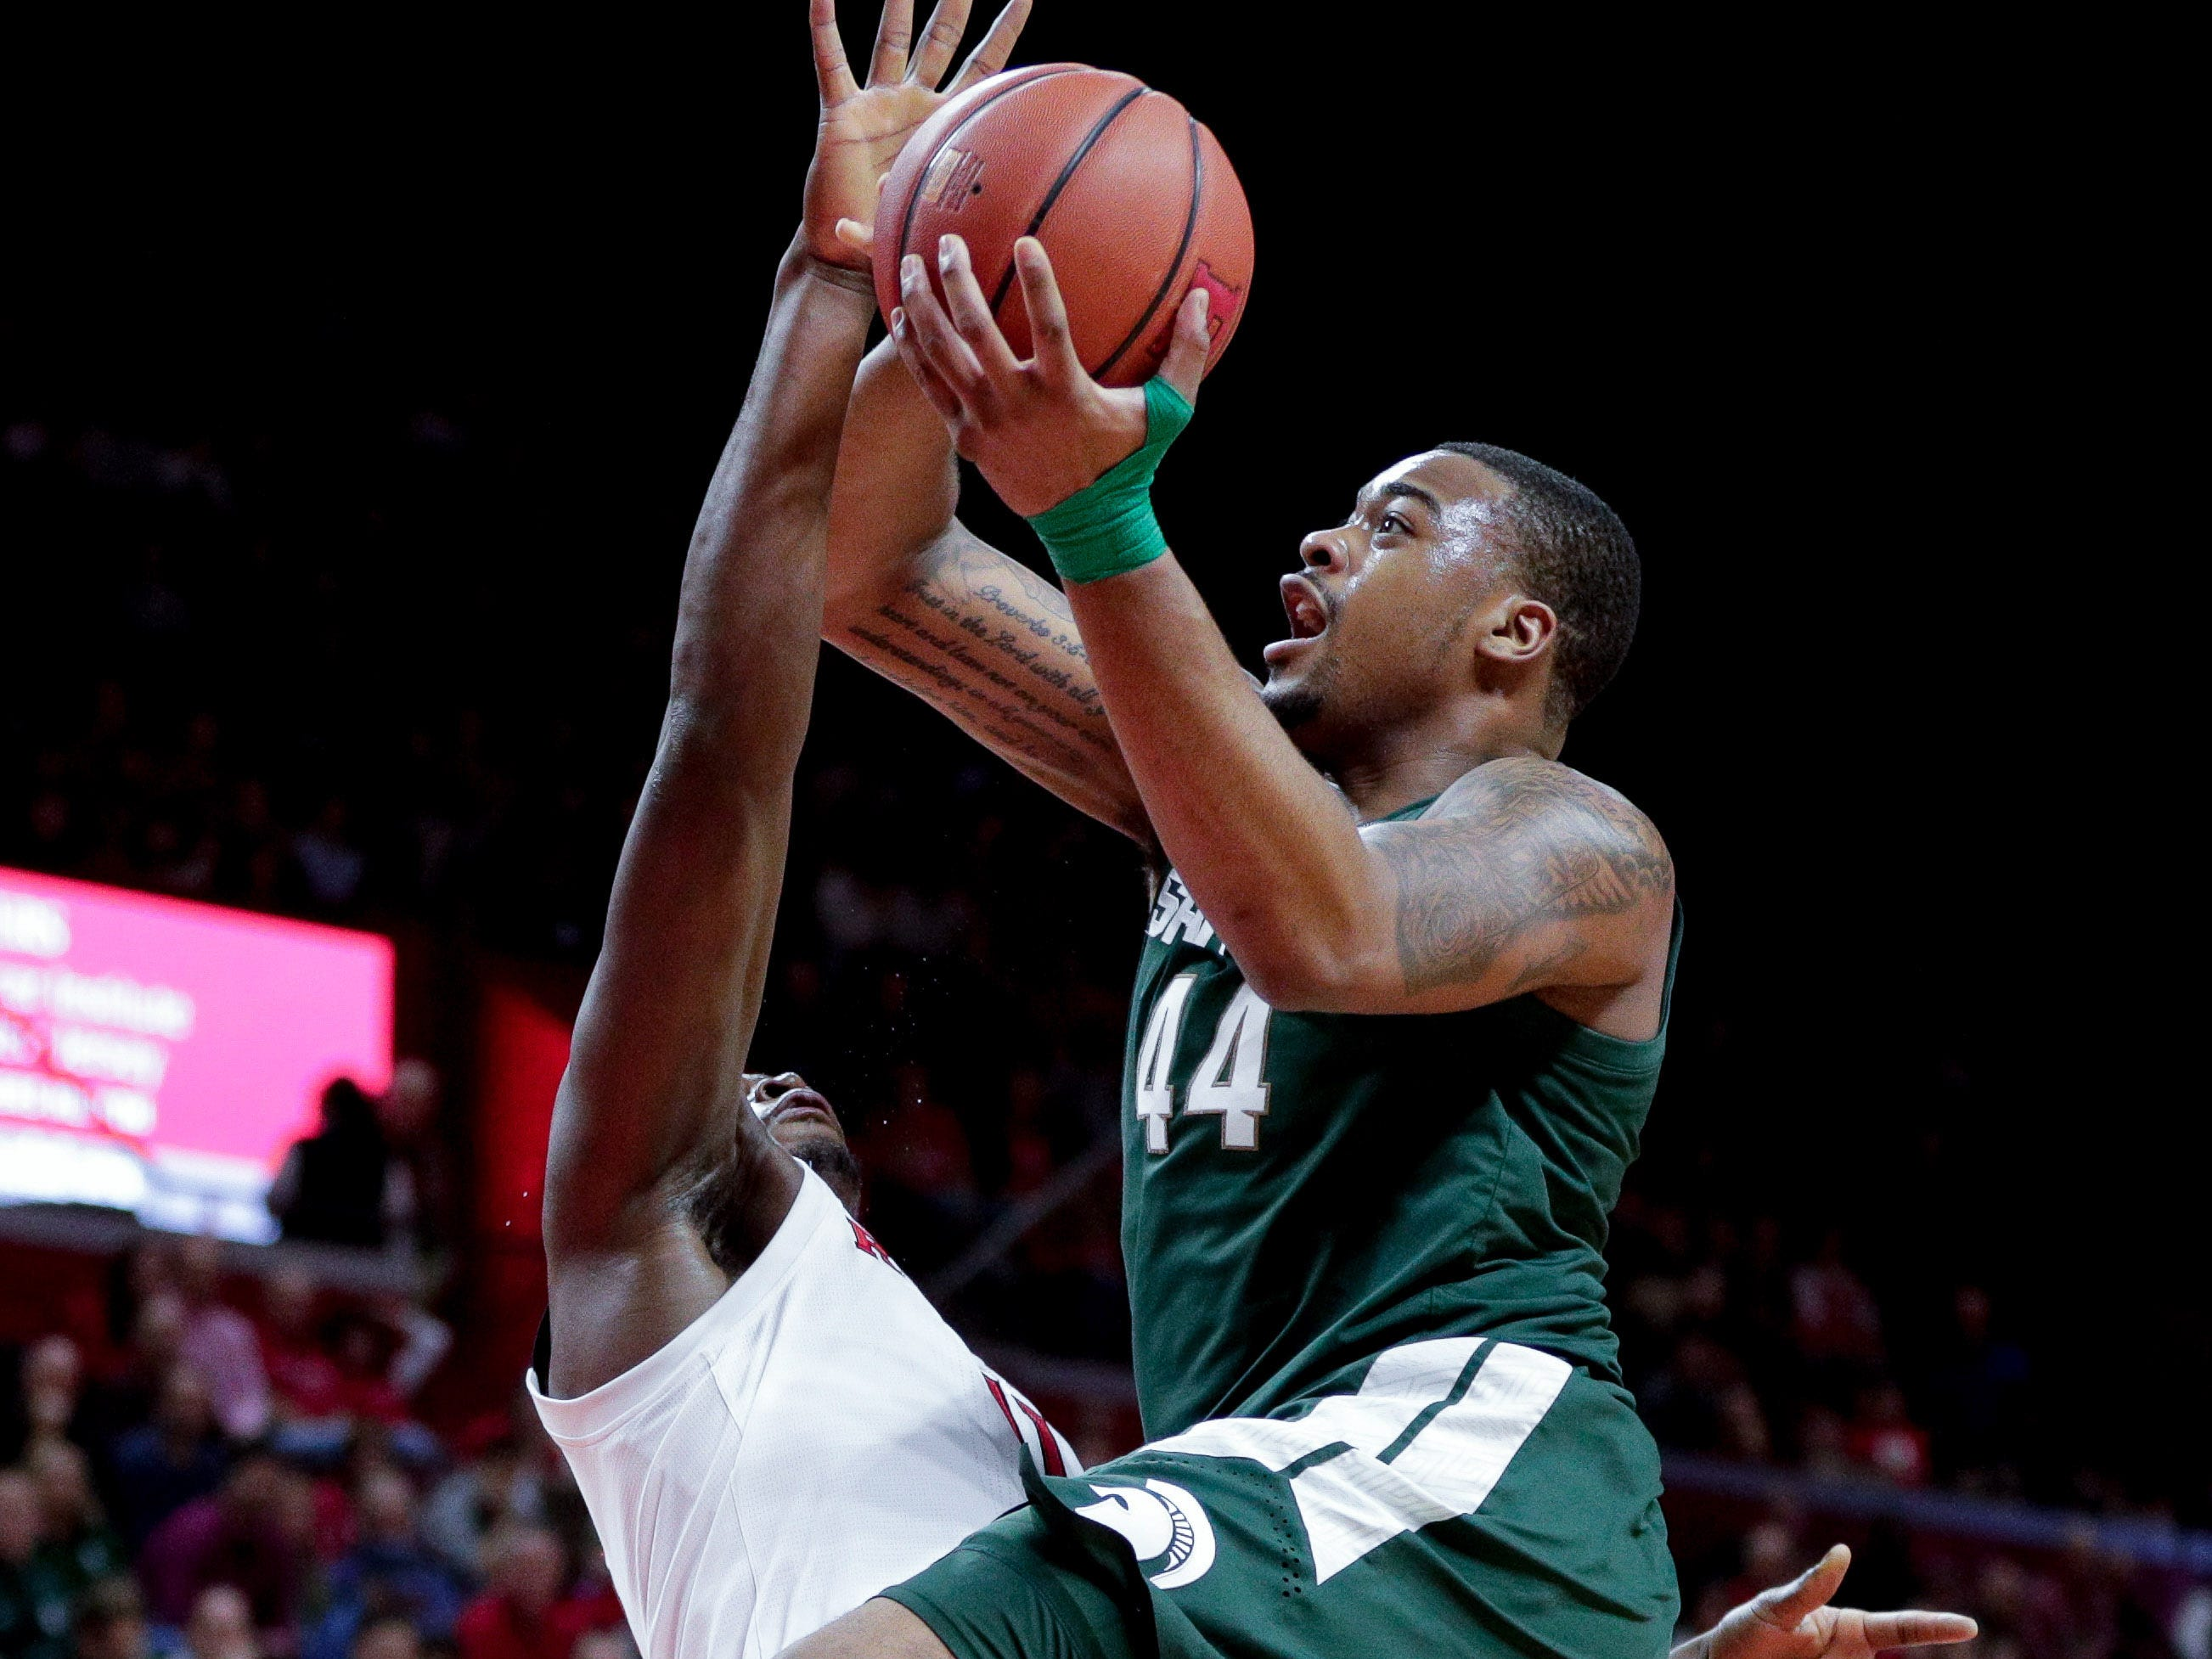 Michigan State Spartans forward Nick Ward (44) drives to the basket as Rutgers Scarlet Knights forward Mamadou Doucoure (11) defends during the first half at Rutgers Athletic Center (RAC).